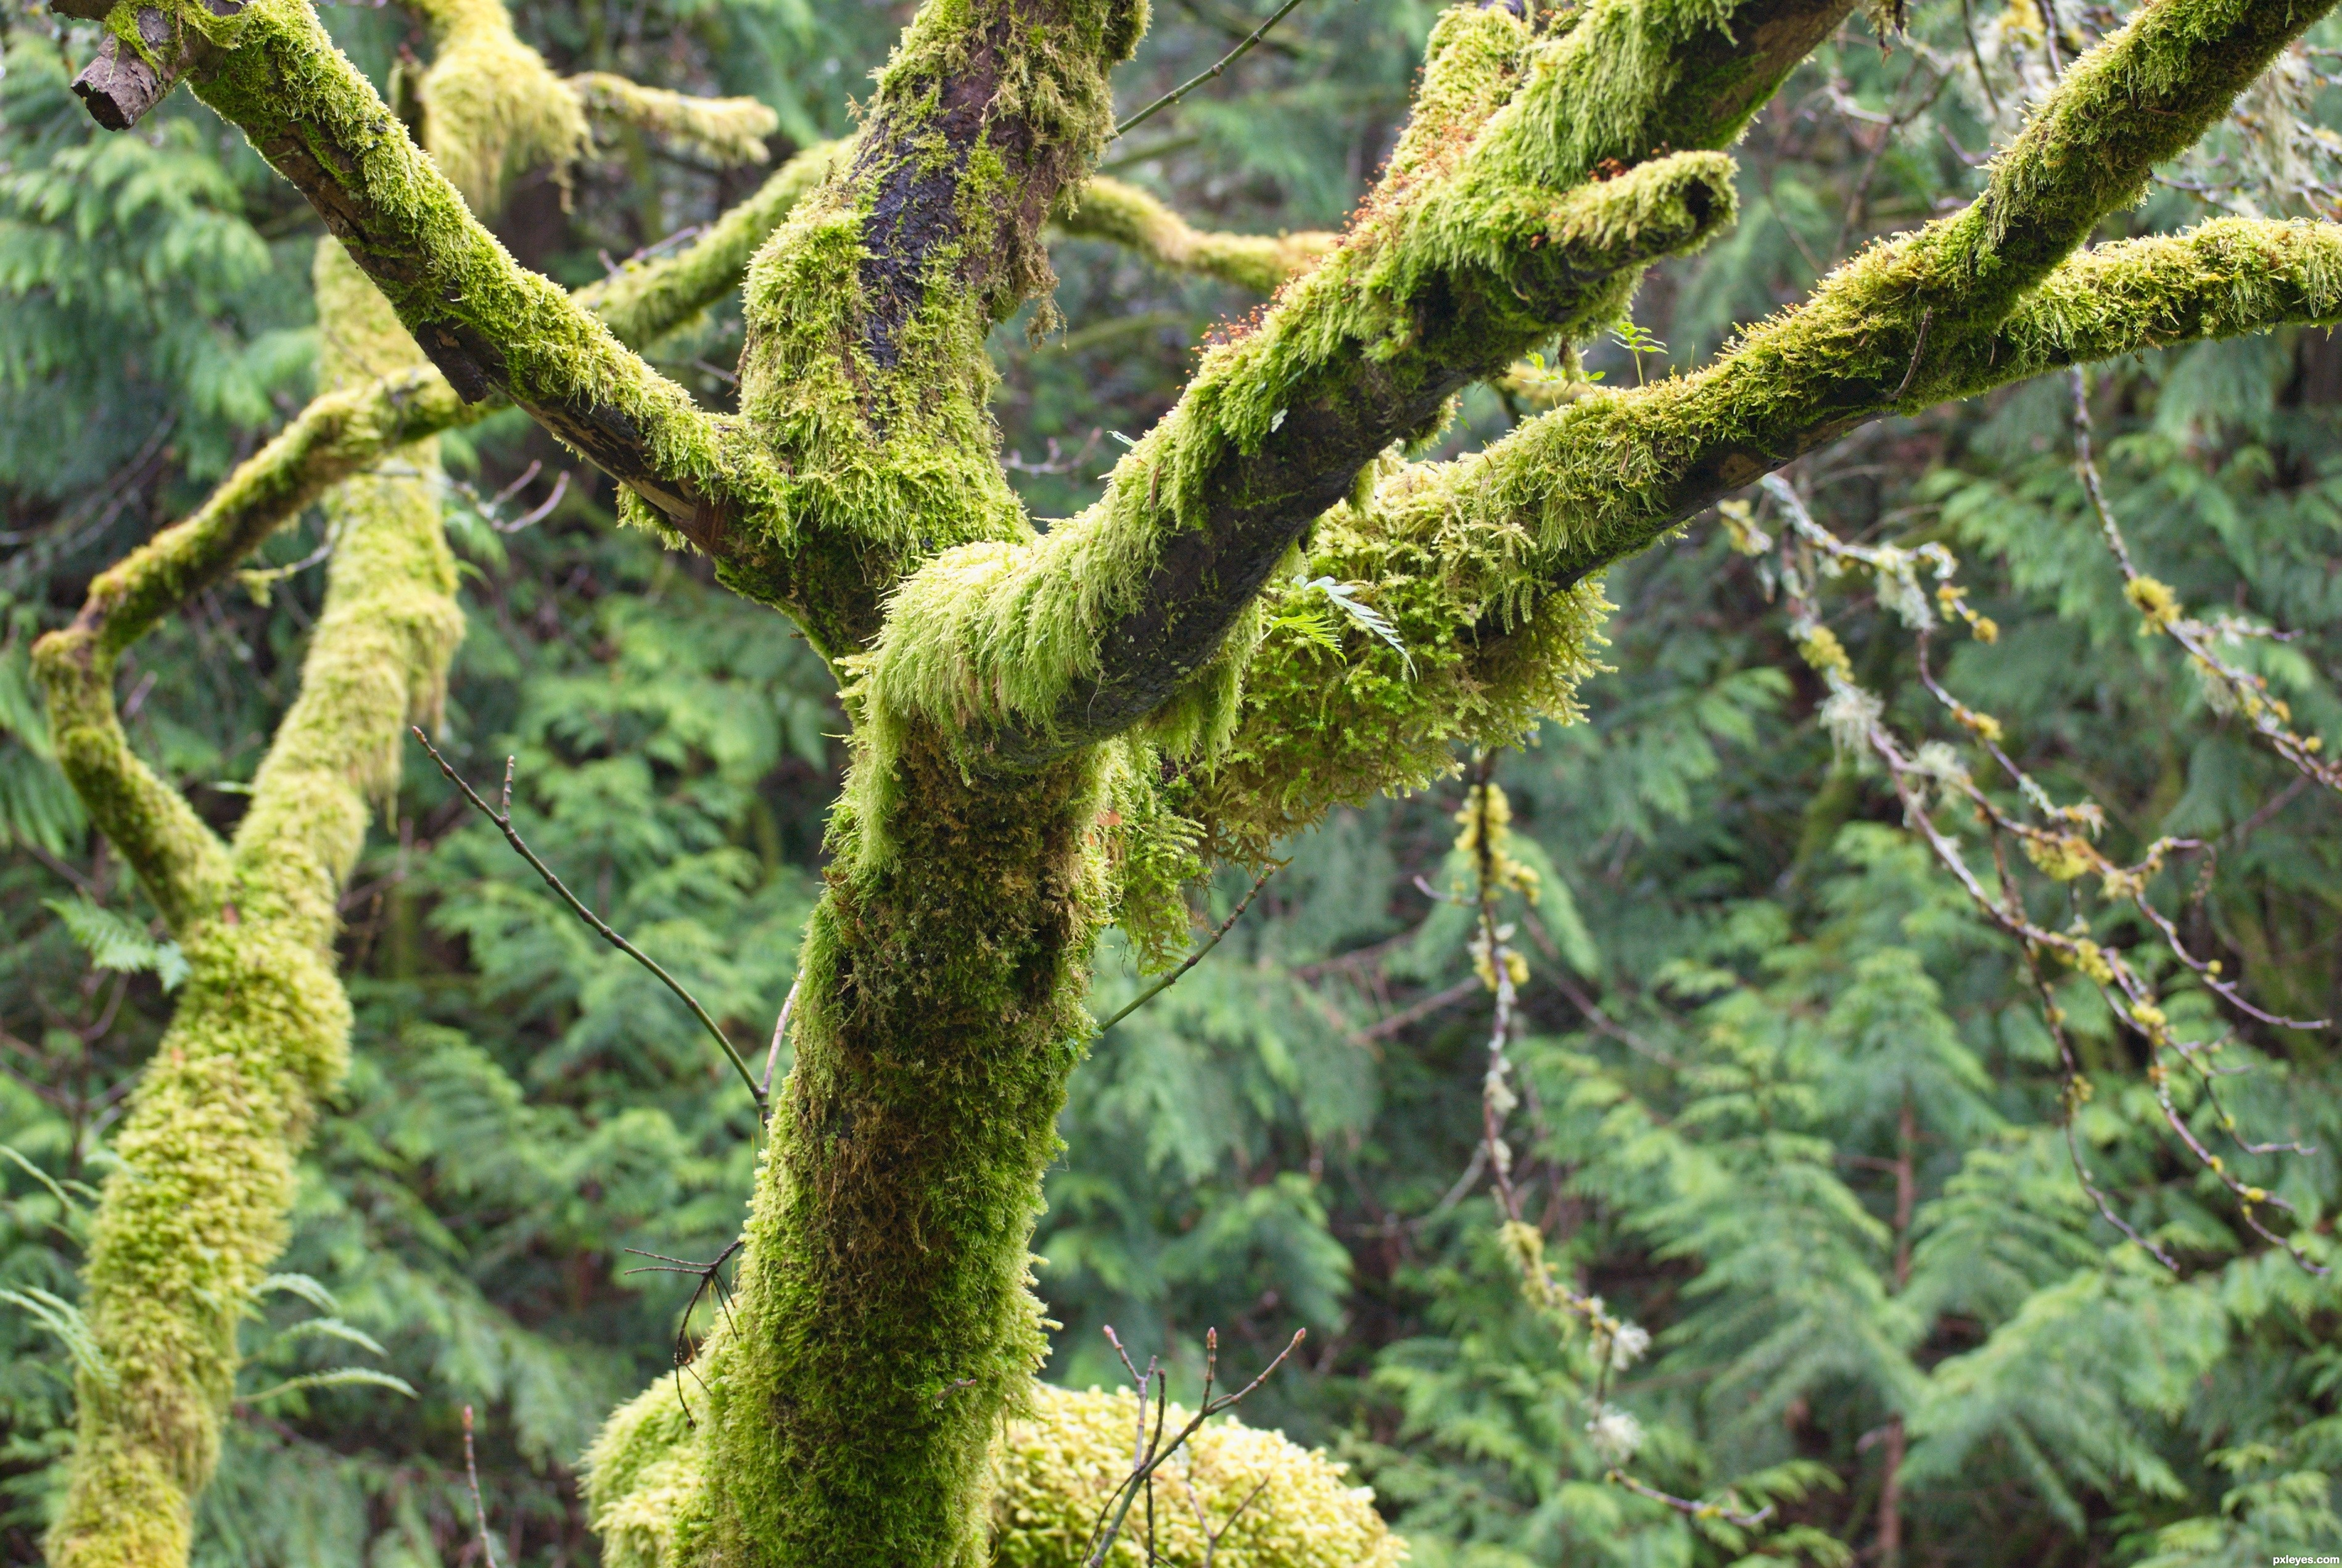 3797x2542 Tree Moss Picture, By Besea For Weeds 2 Photography Contest